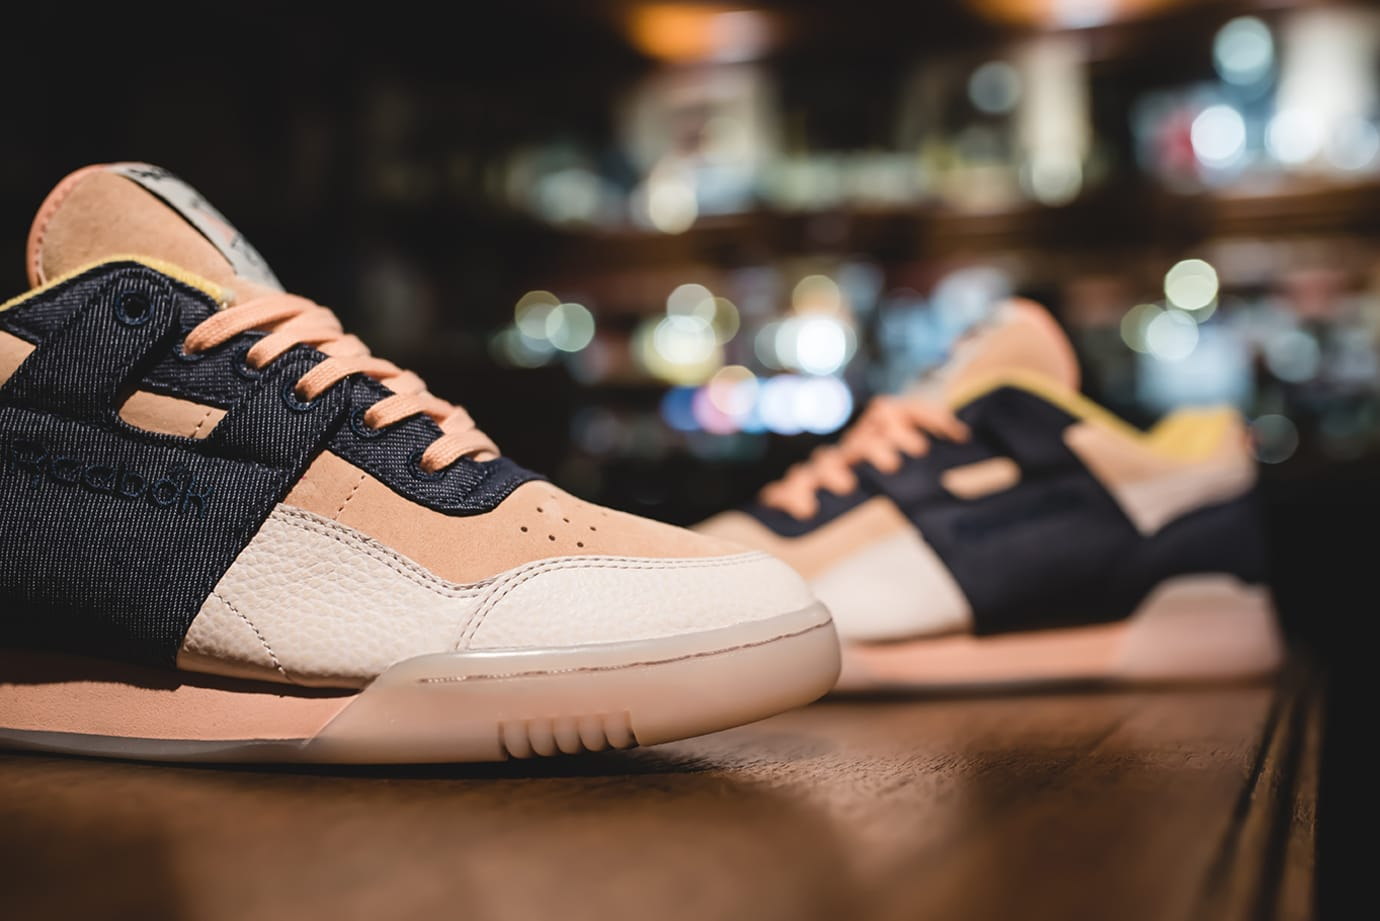 Hanon x Reebok Workout Lo Plus 'Belly's Gonna Get Ya' BS7771 3